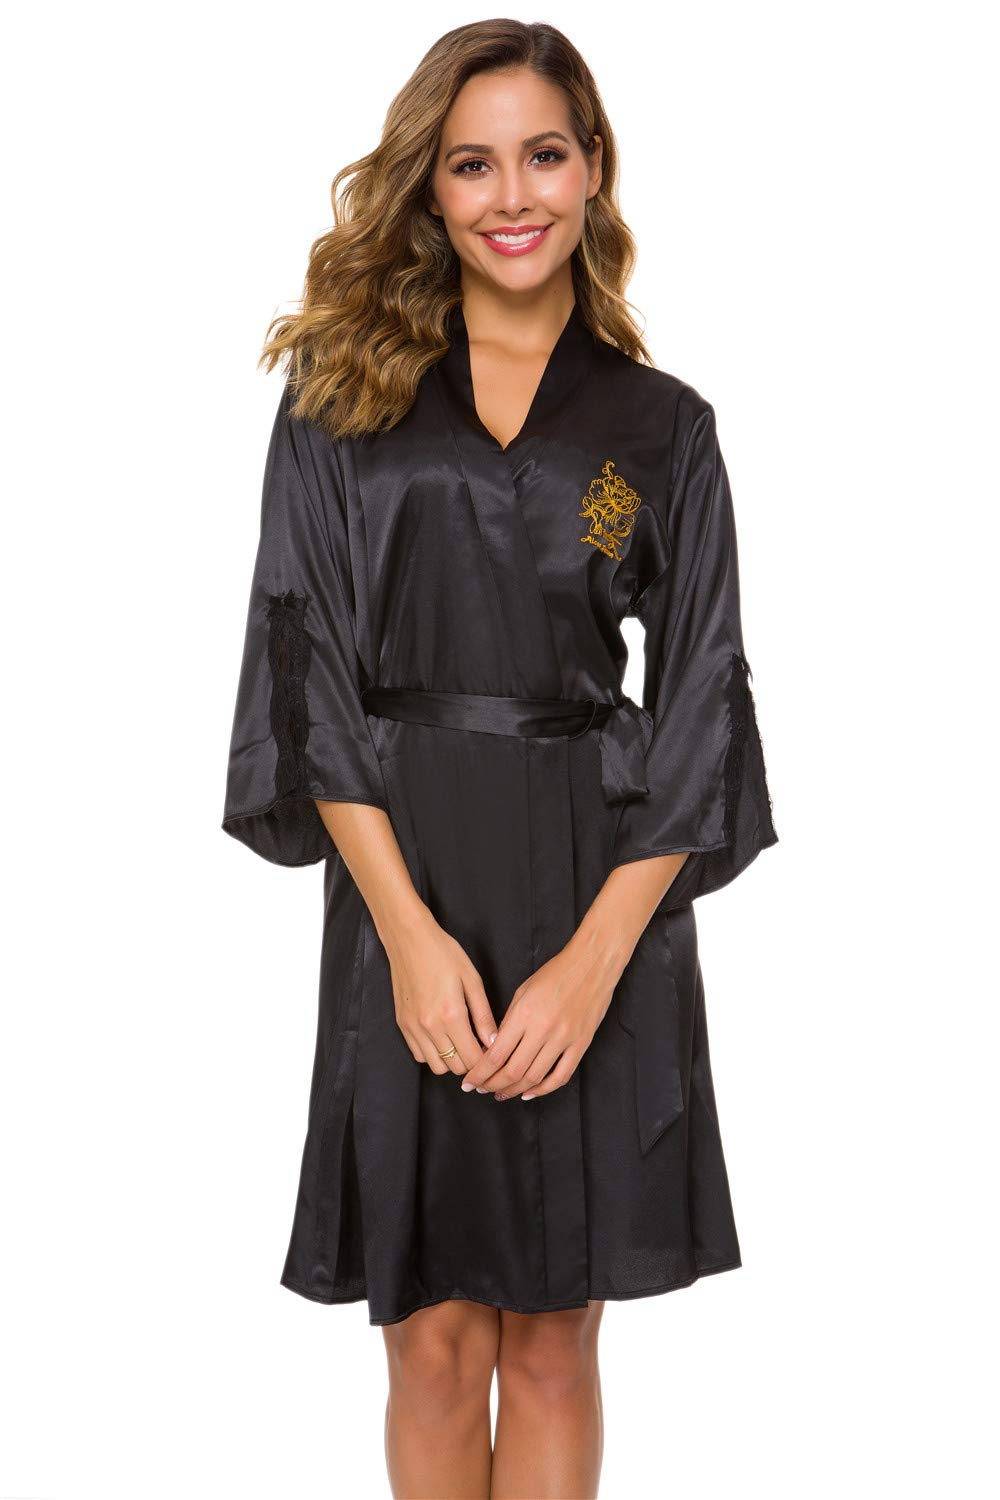 Alcea Rosea Women's Lace Trim Kimono Short Satin Robe Bridesmaids Sleepwear 3/4 Sleeve V-Neck Silky Party Bathrobe Plus Size